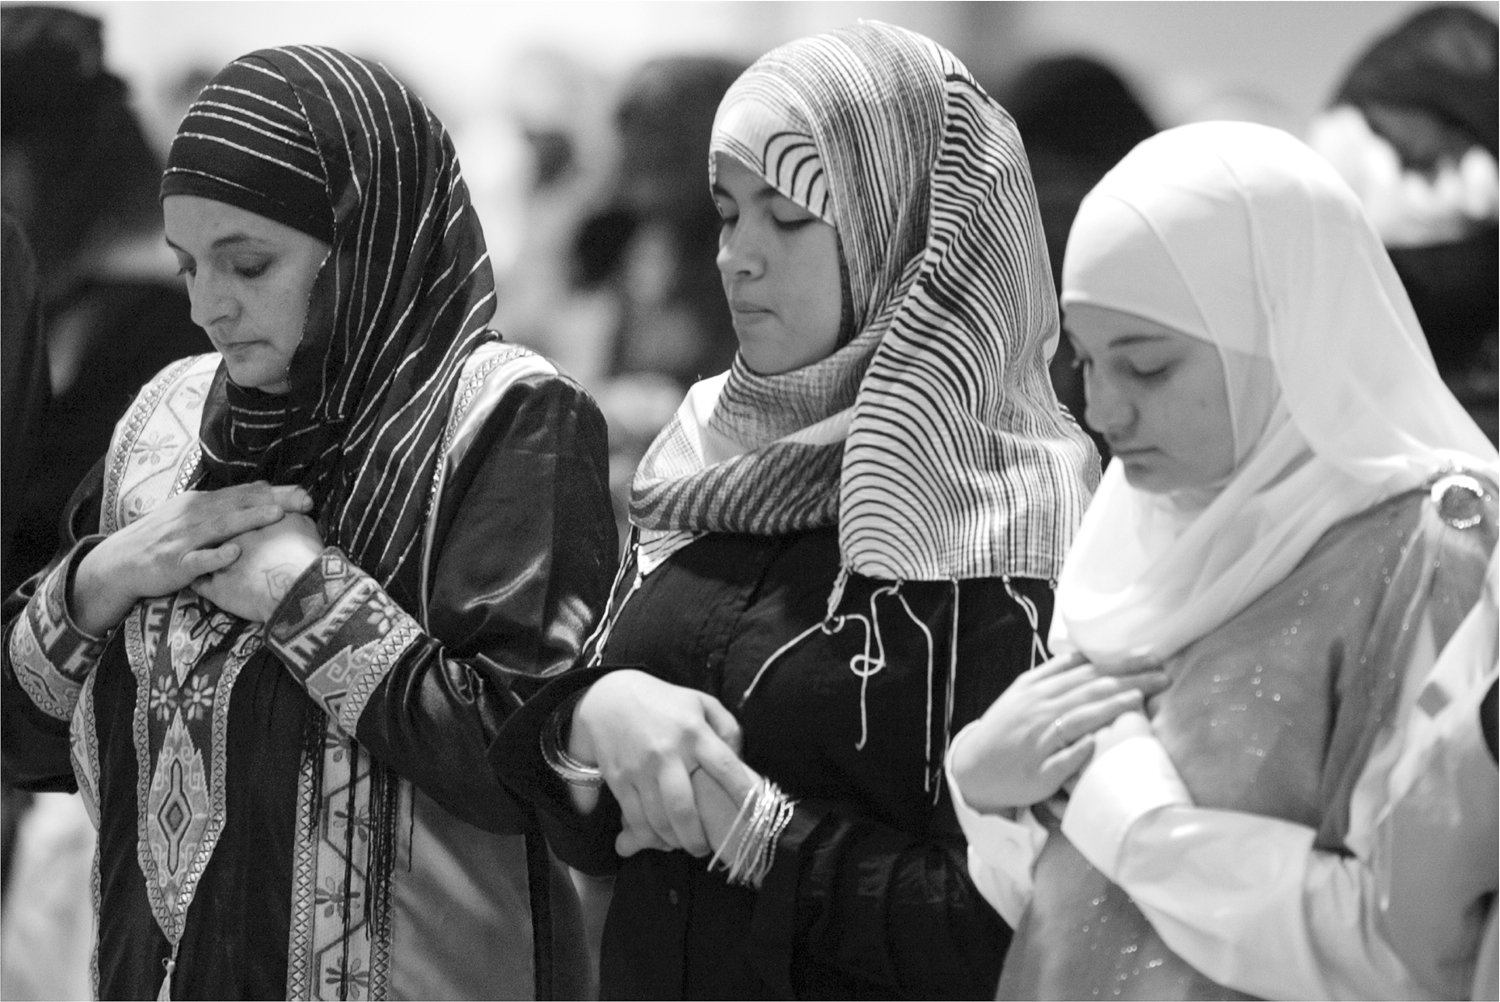 a look at the perception of women in islam Women are not oppressed, we argue passionately women were given property rights in 7th century arabia, while prior to islam, women were but in these discussions, muslims compare islamic ideals with western reality they do not look at the sad, sad reality of so many muslim women today.